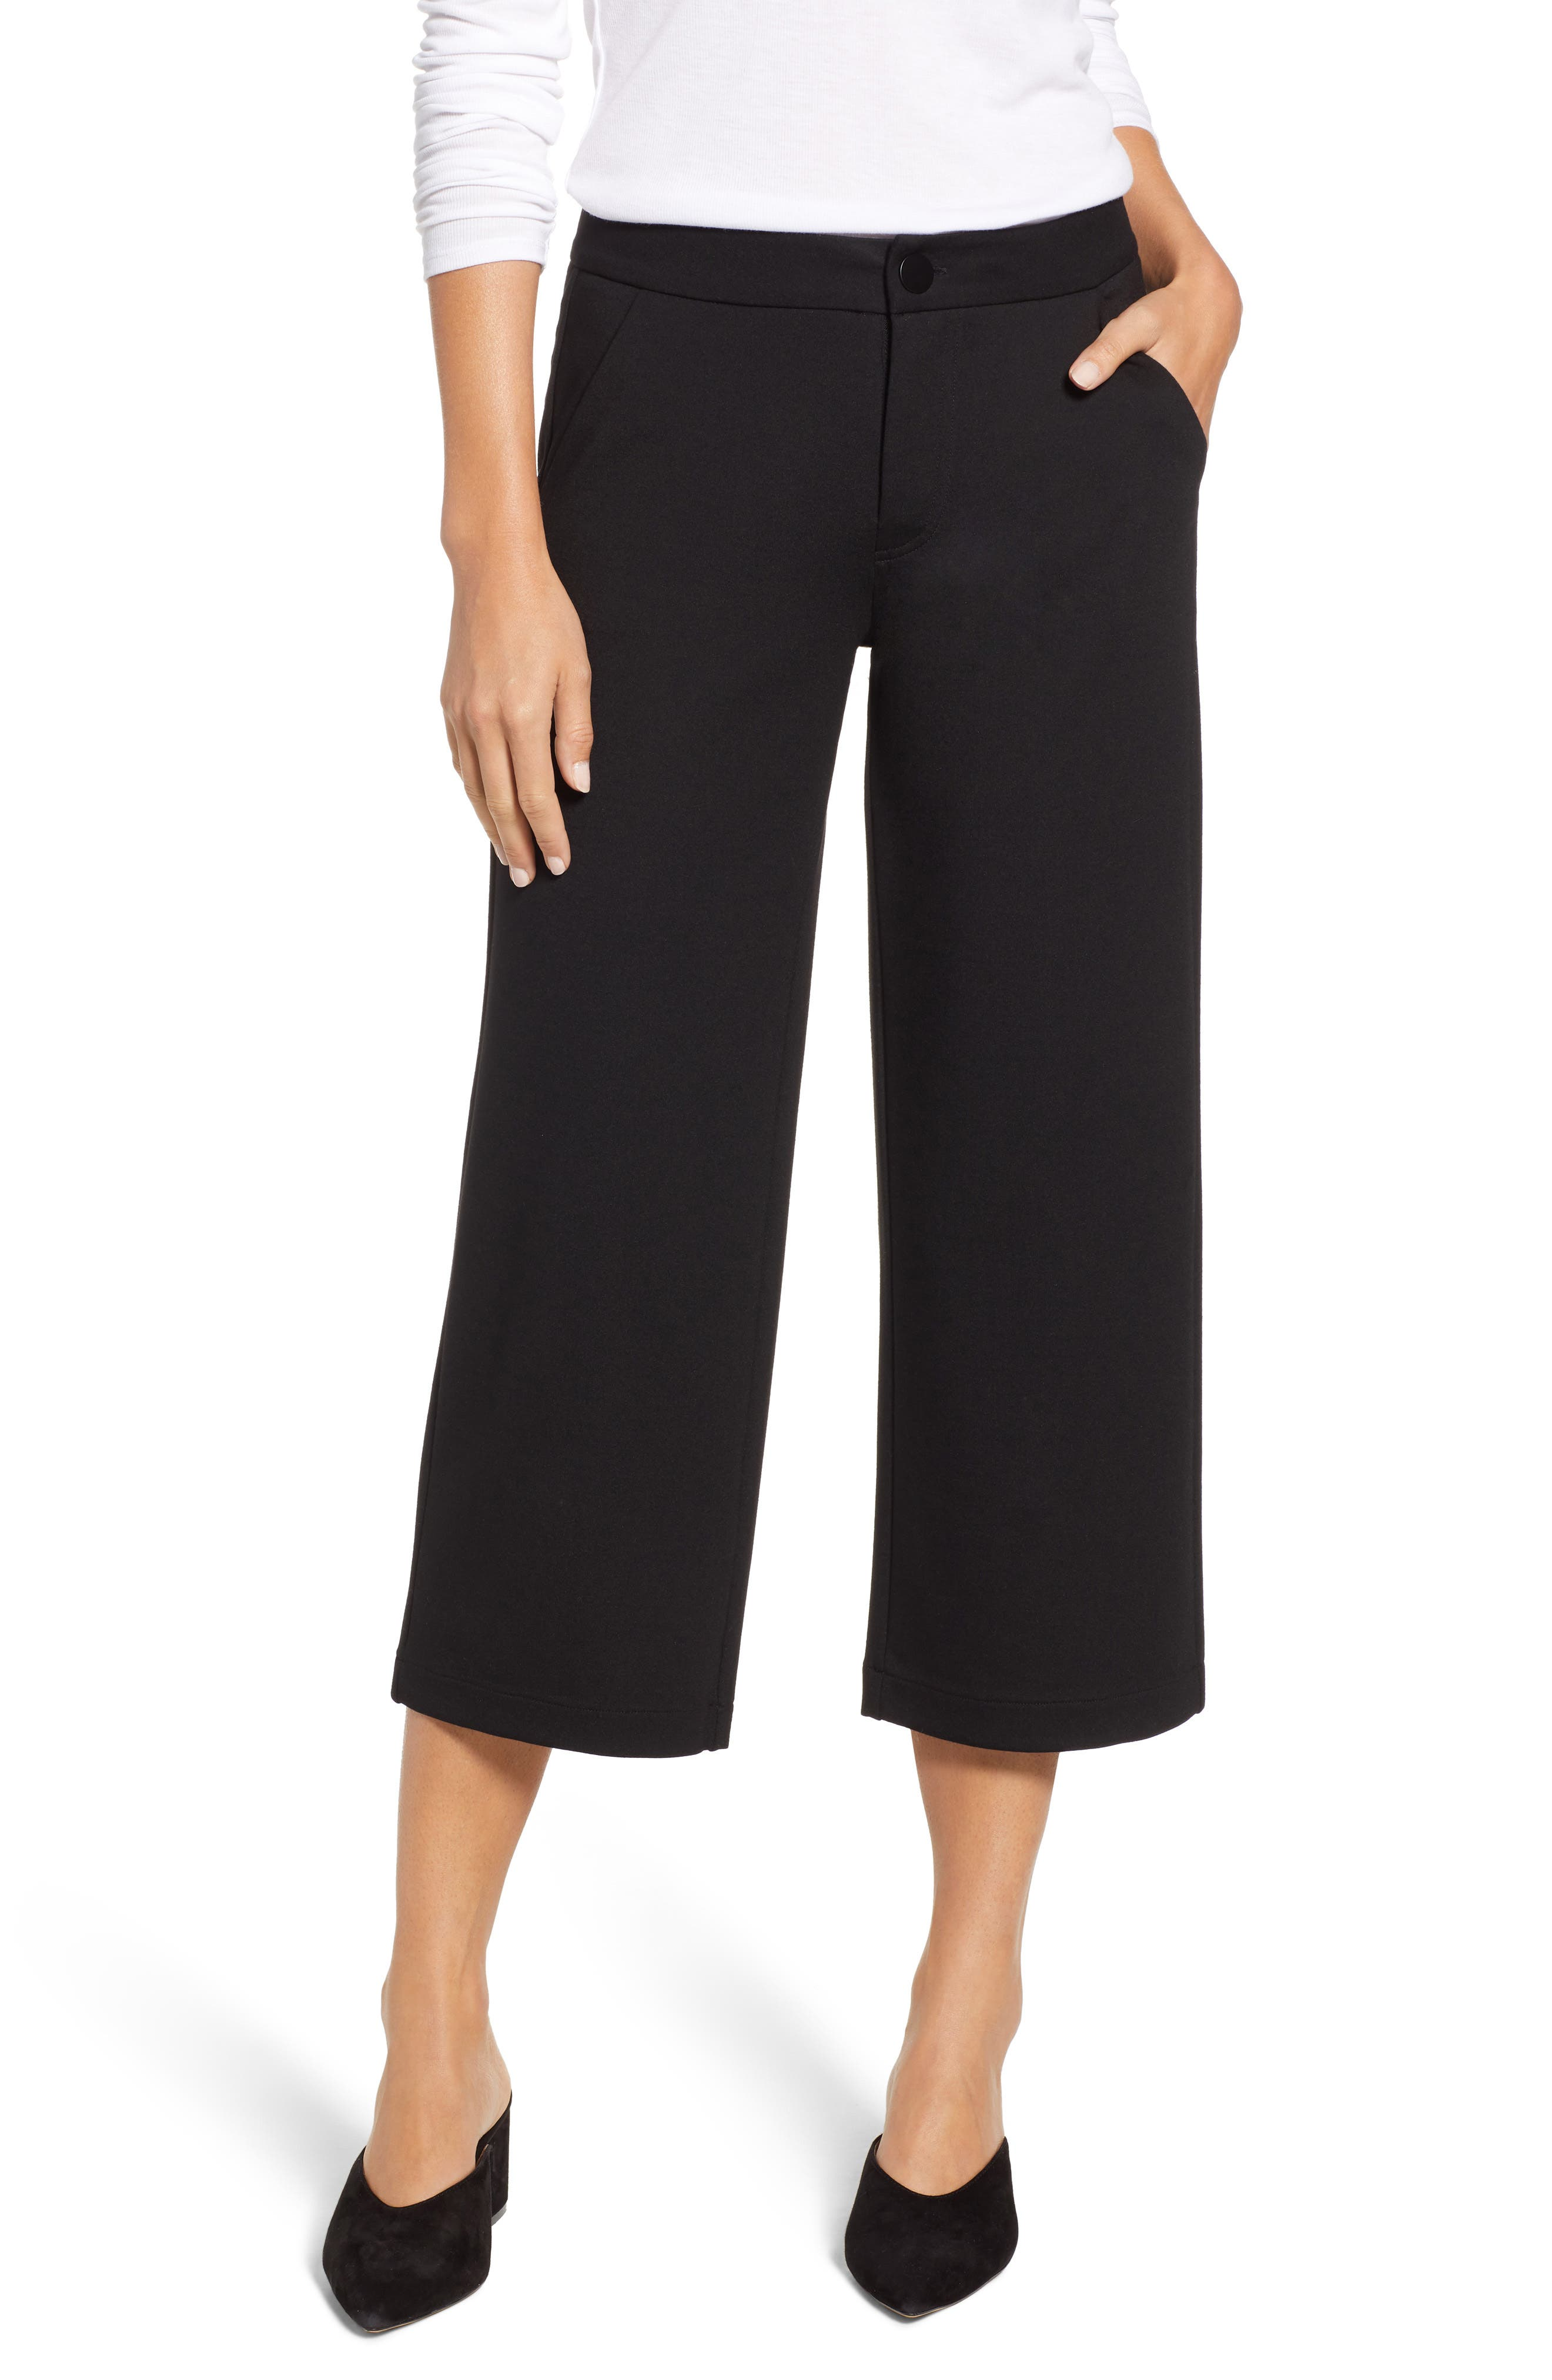 Blair Crop Wide Leg Ponte Pants,                             Main thumbnail 1, color,                             BLACK